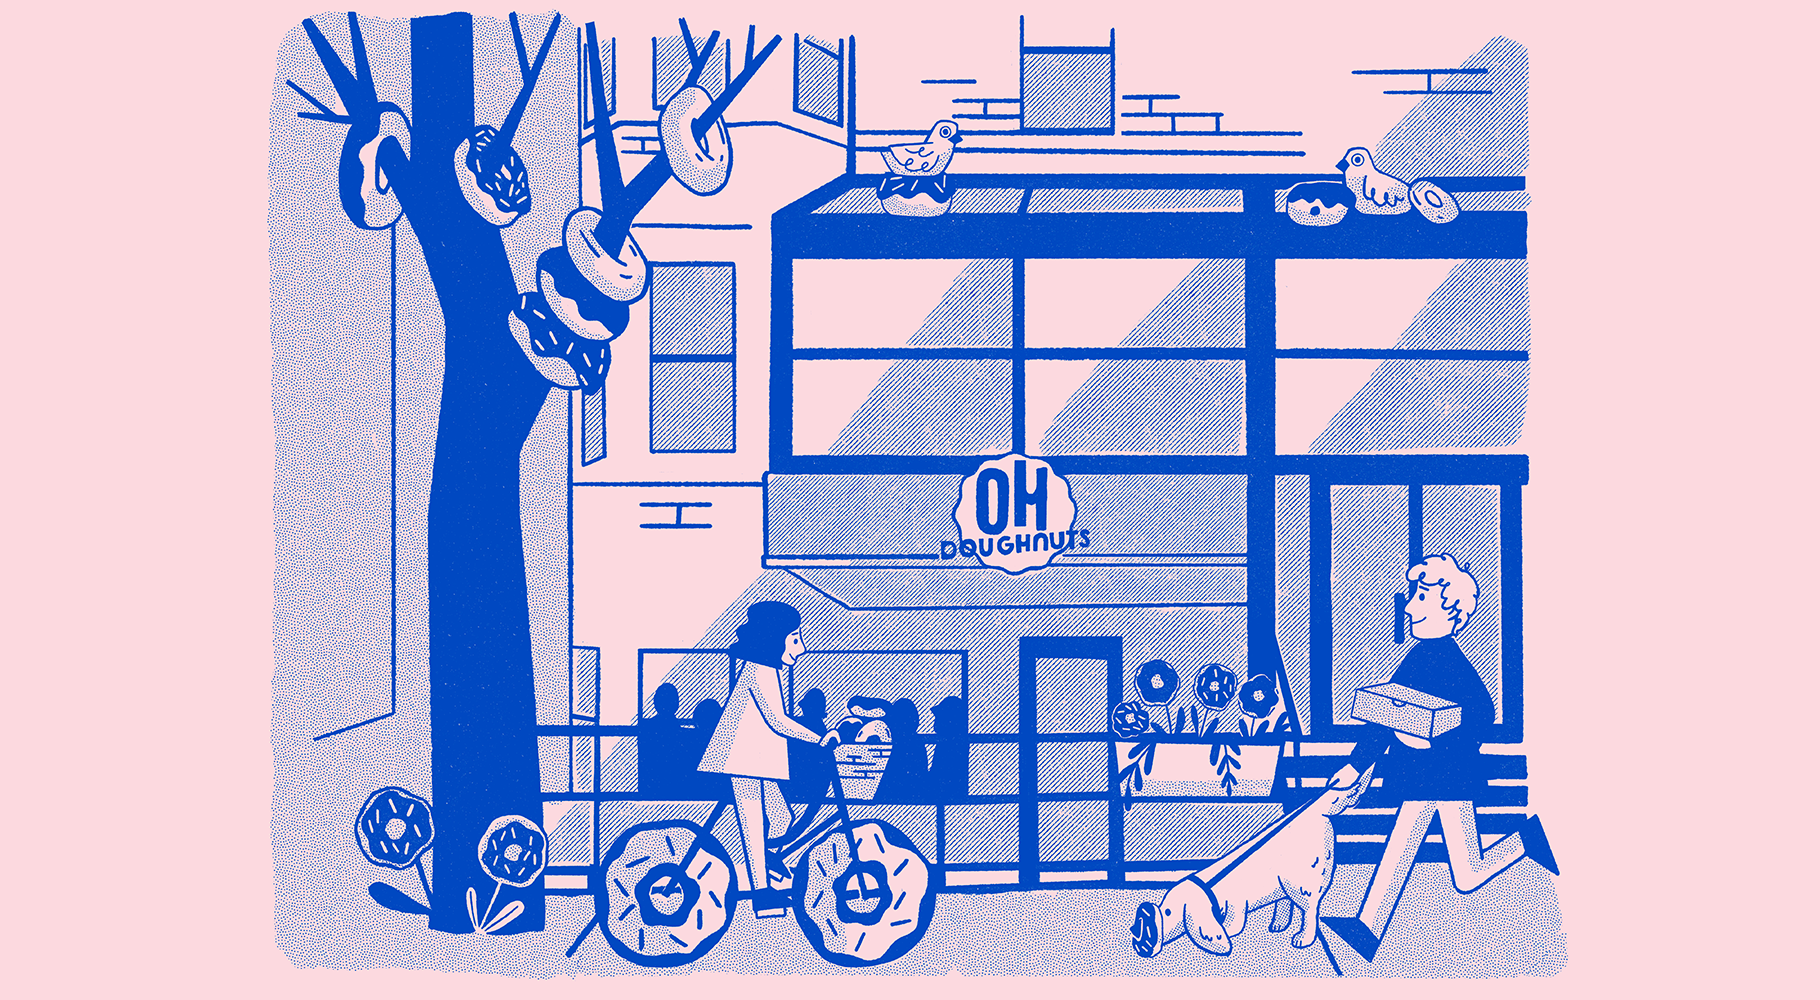 An illustration of the Oh Doughnuts storefront with a tree with doughnuts hanging from the branches, pigeons in doughnut nests, a girl on a doughnut bike and a man walking a dog with a doughnut on it's snout. The illustration is blue with a pink background.